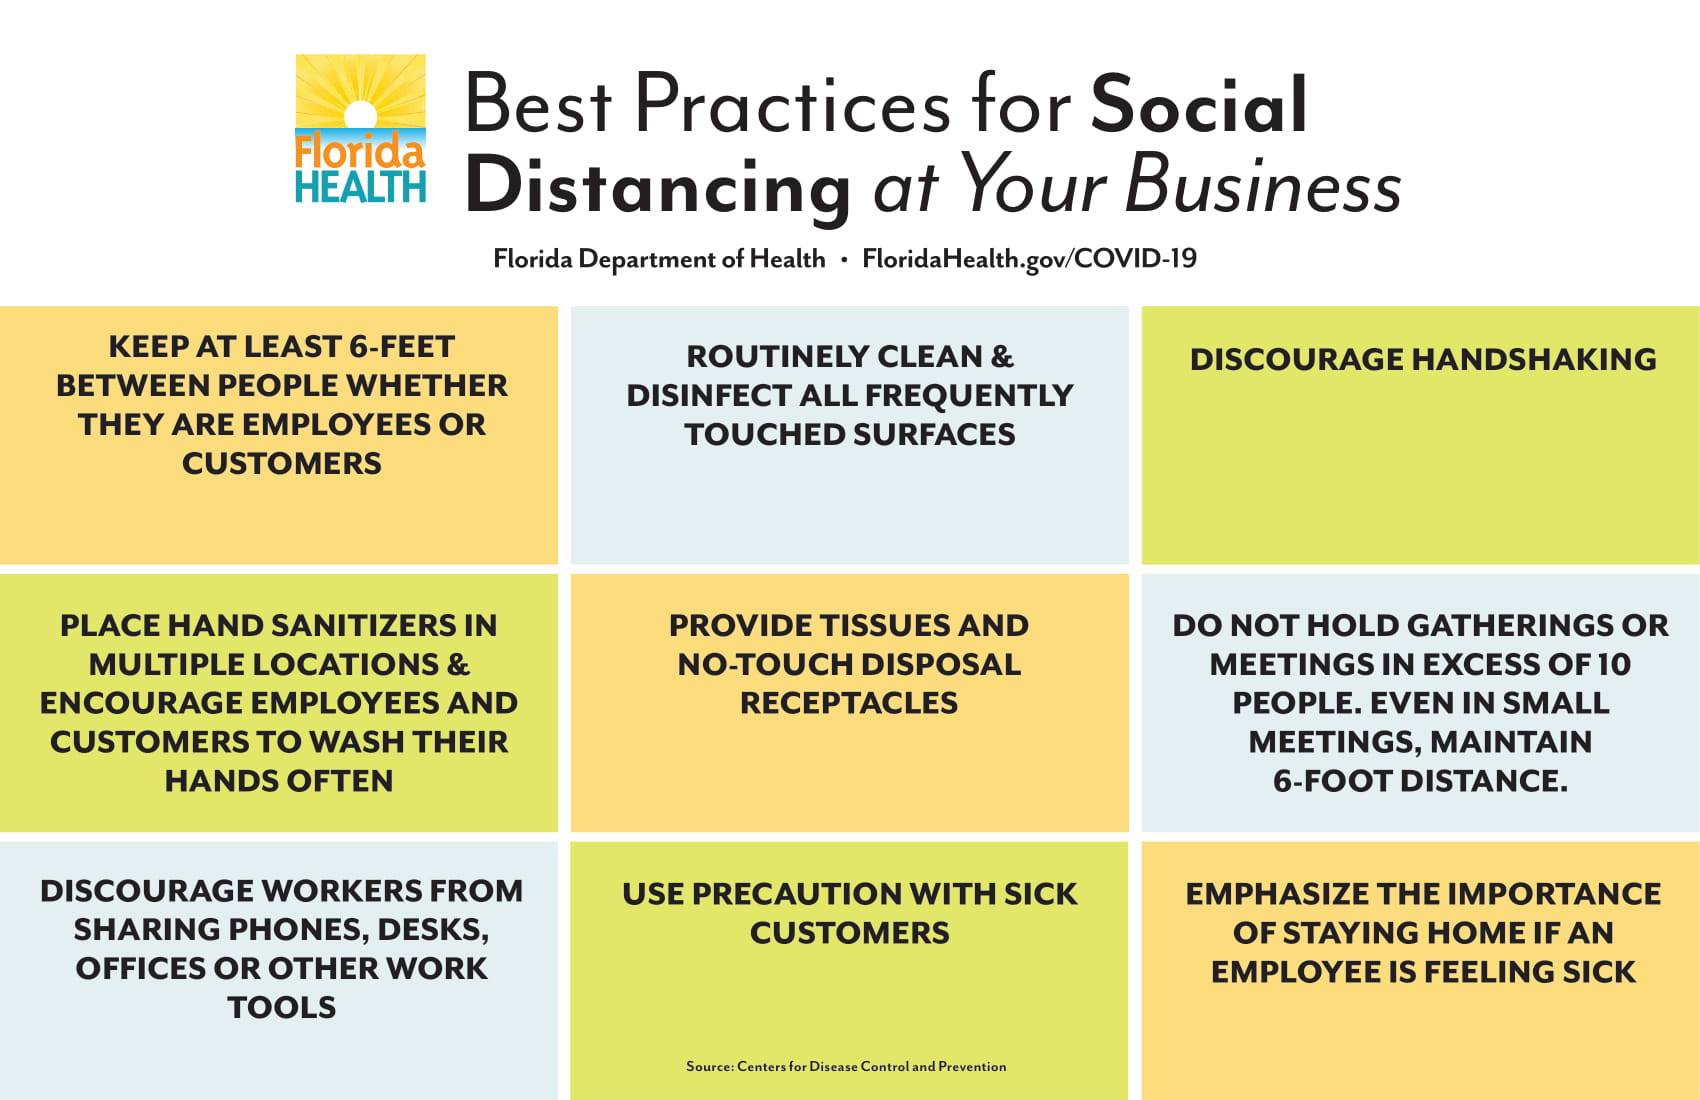 Best practices for social distancing at your business